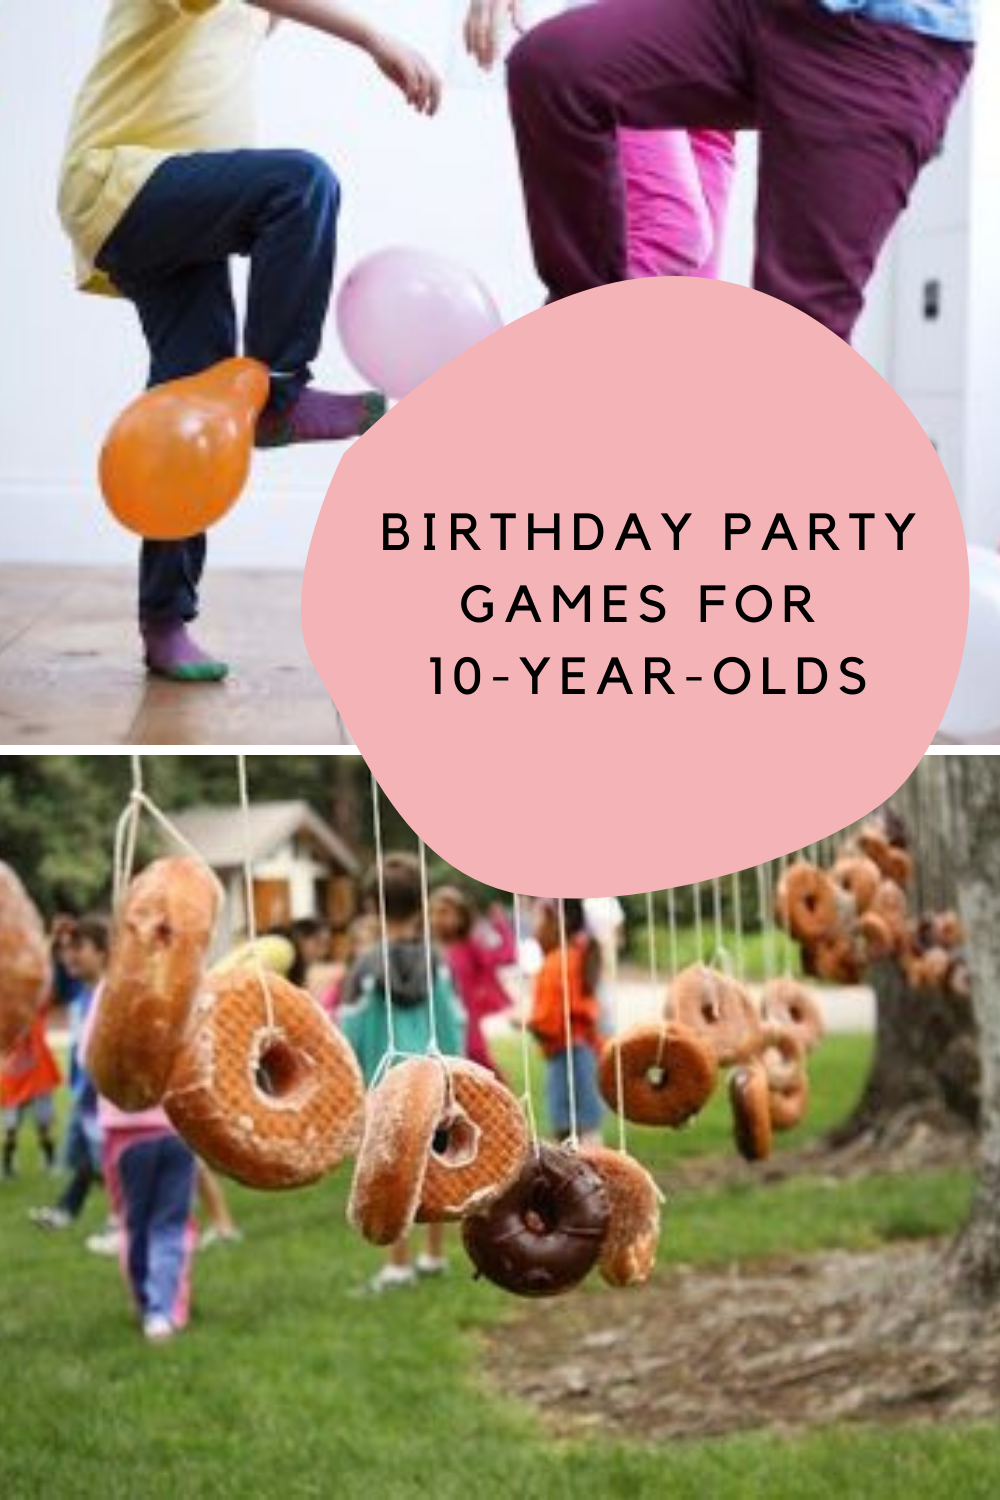 Our Favorite Birthday Party Games For 10 Year Olds Peachy Party Boys Birthday Party Games Girls Birthday Party Games Birthday Party Games For Kids